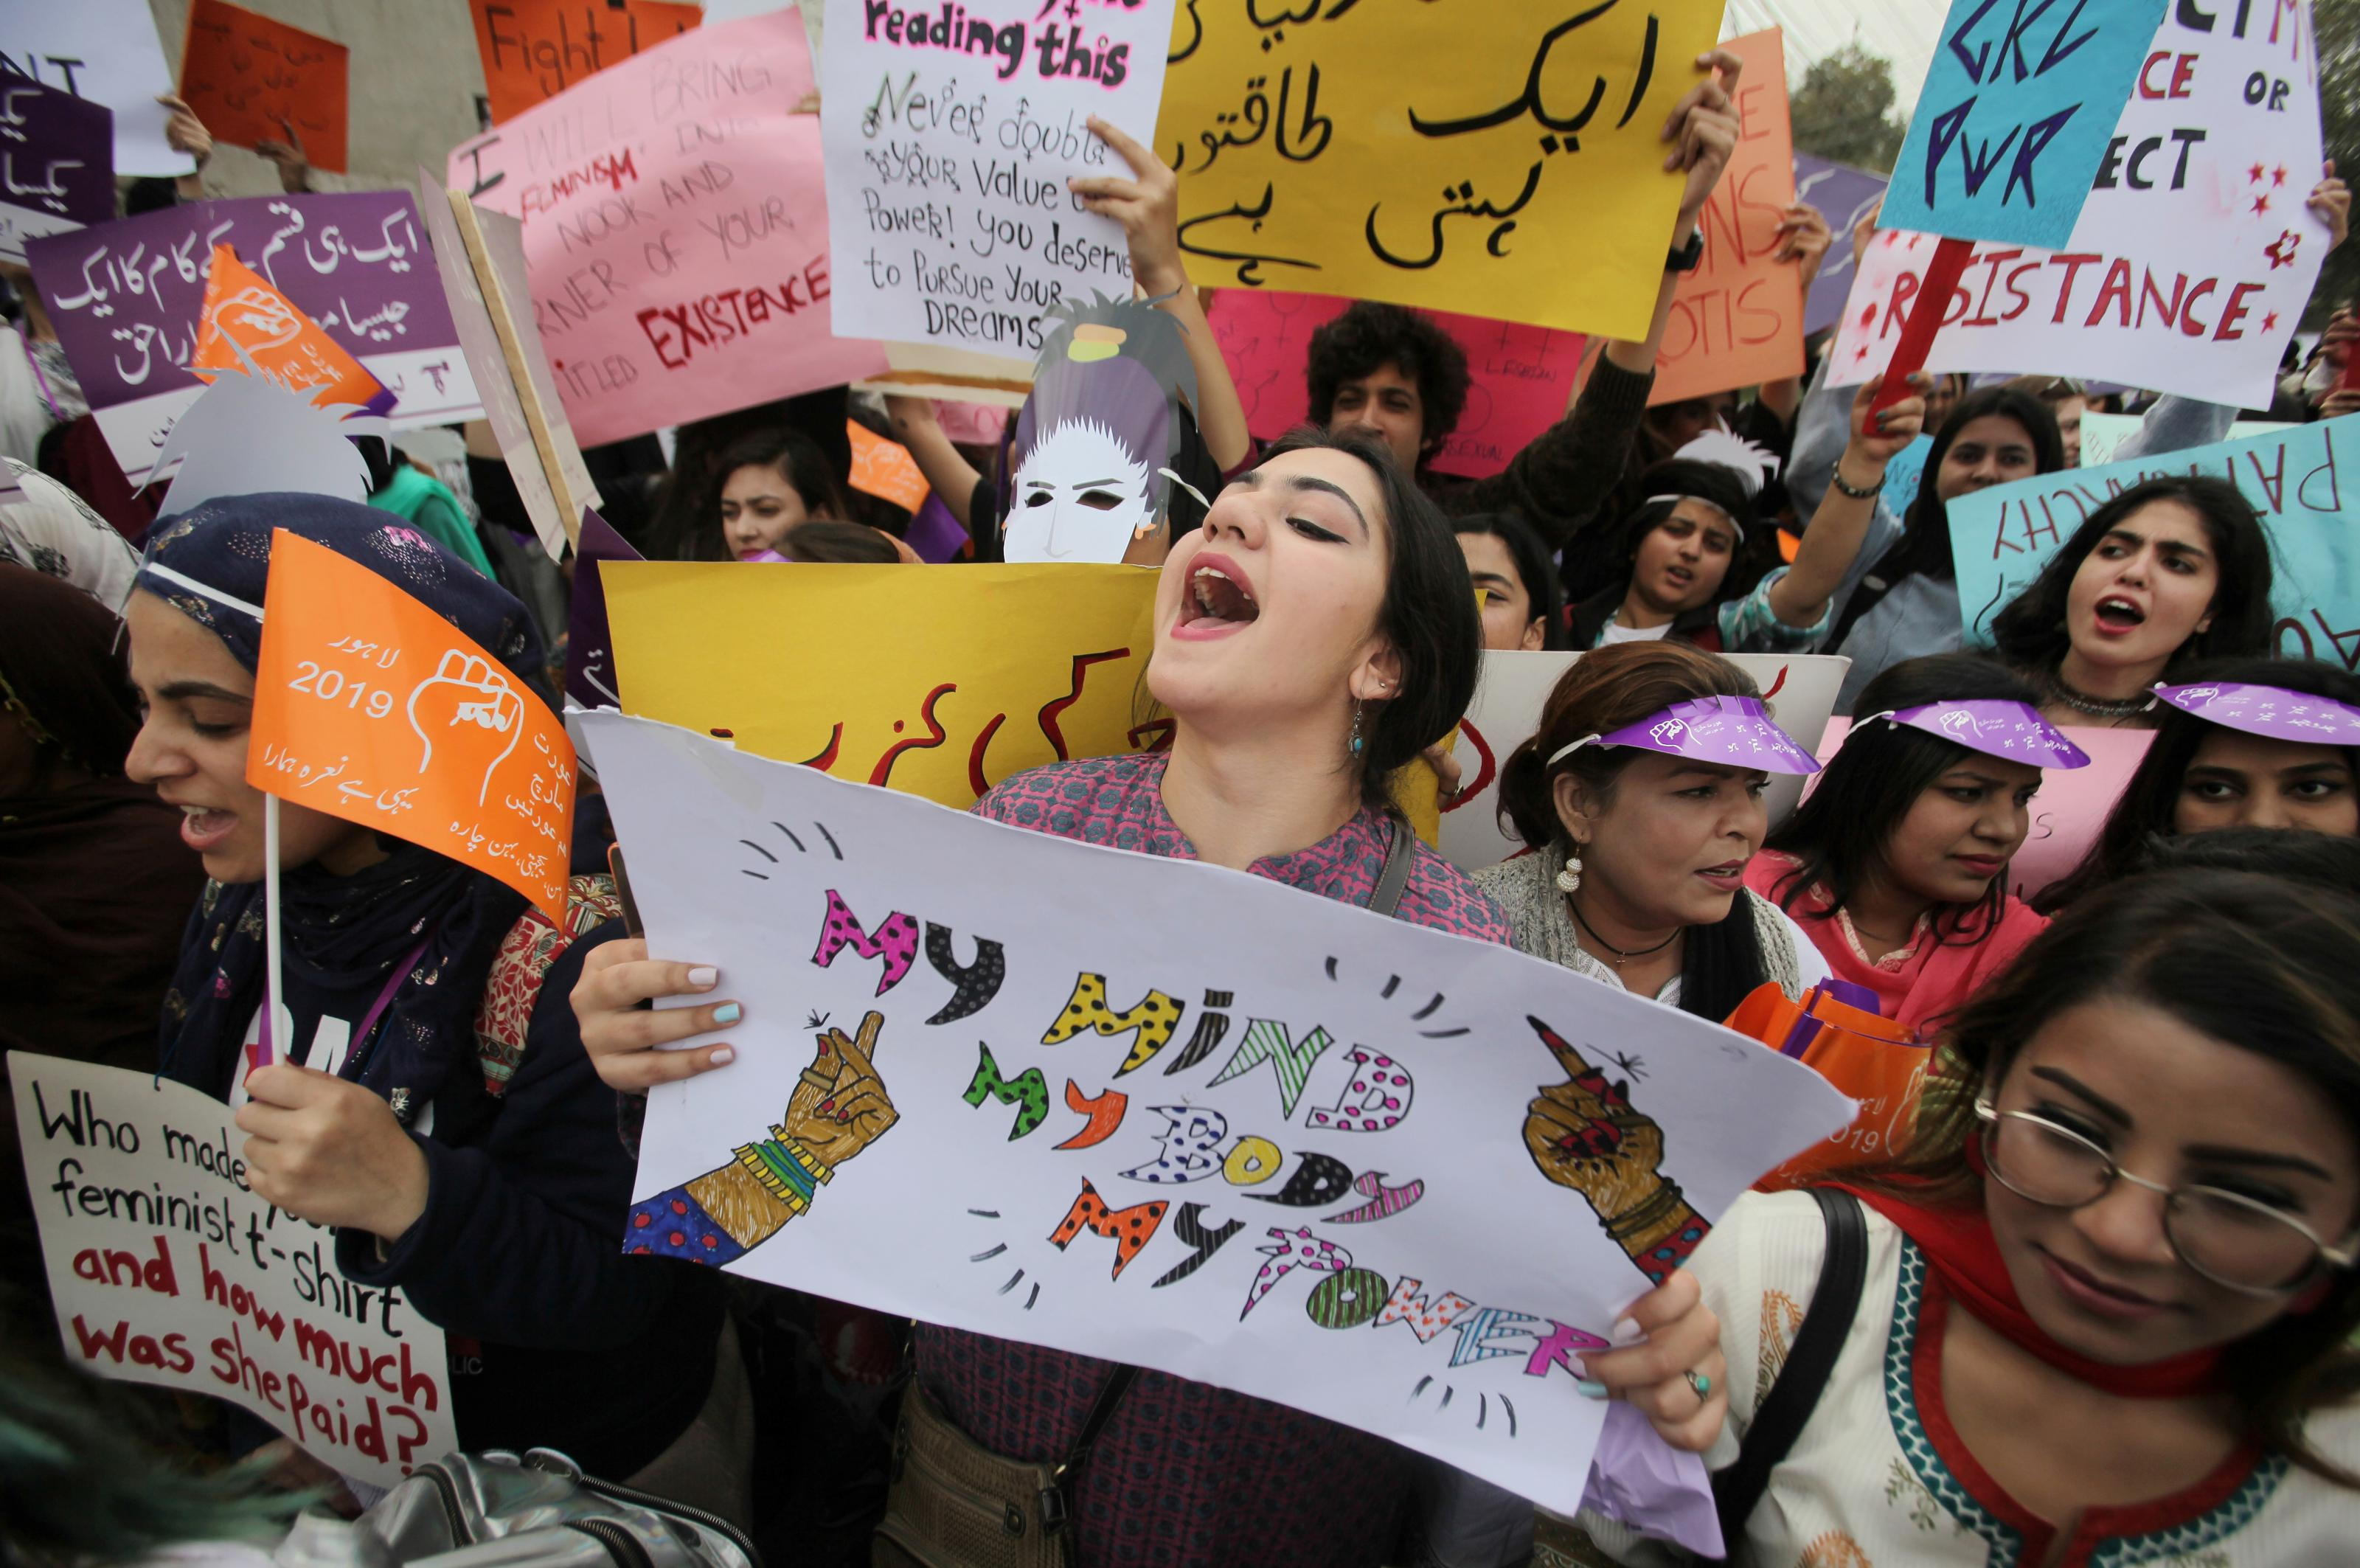 A woman carries a sign and chants slogans during a rally to mark International Women's Day in Lahore, Pakistan March 8, 2019. REUTERS/Mohsin Raza